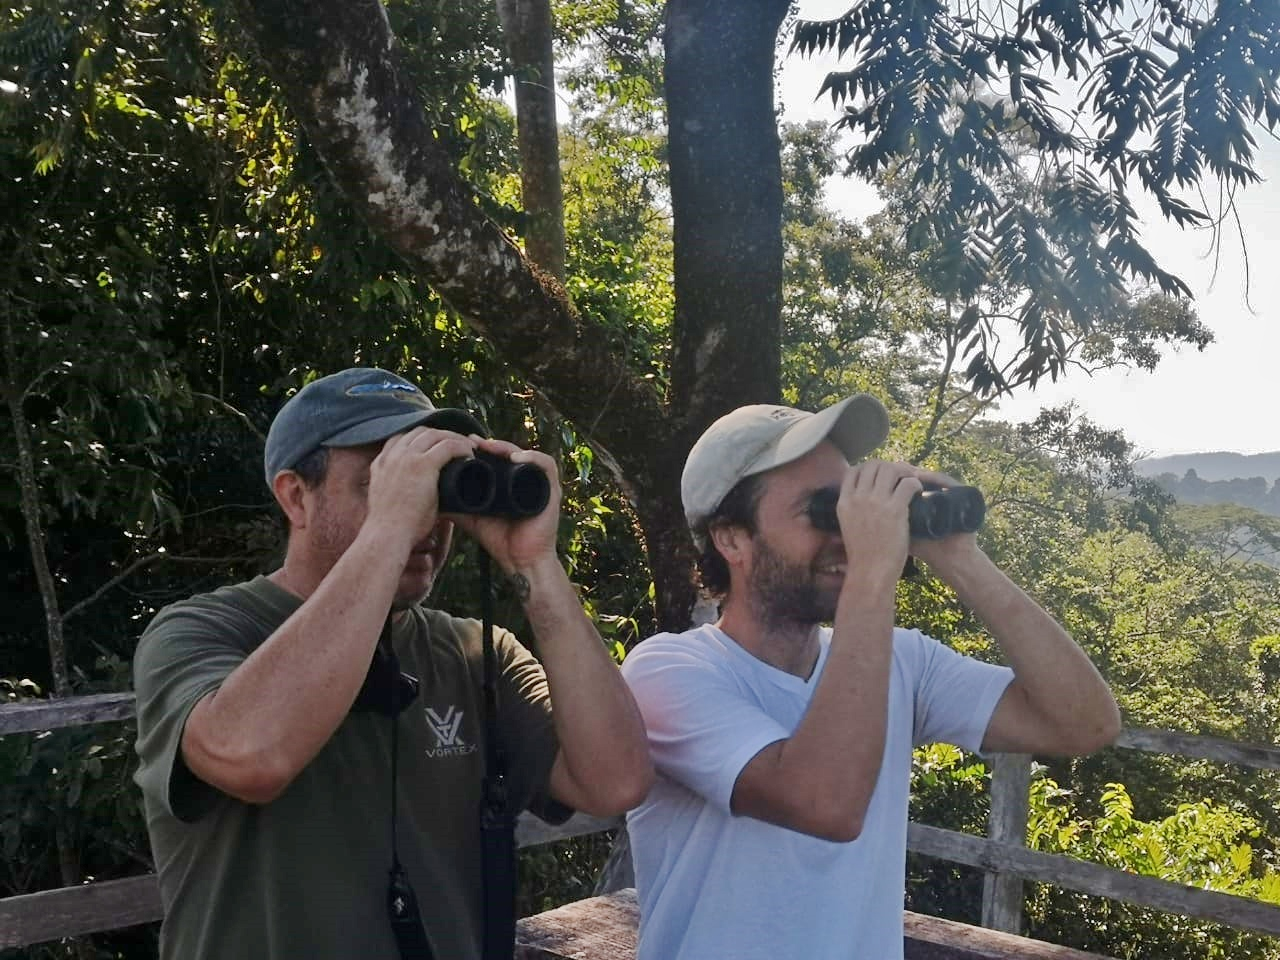 JF and Pablo searching with binoculars from the tower.